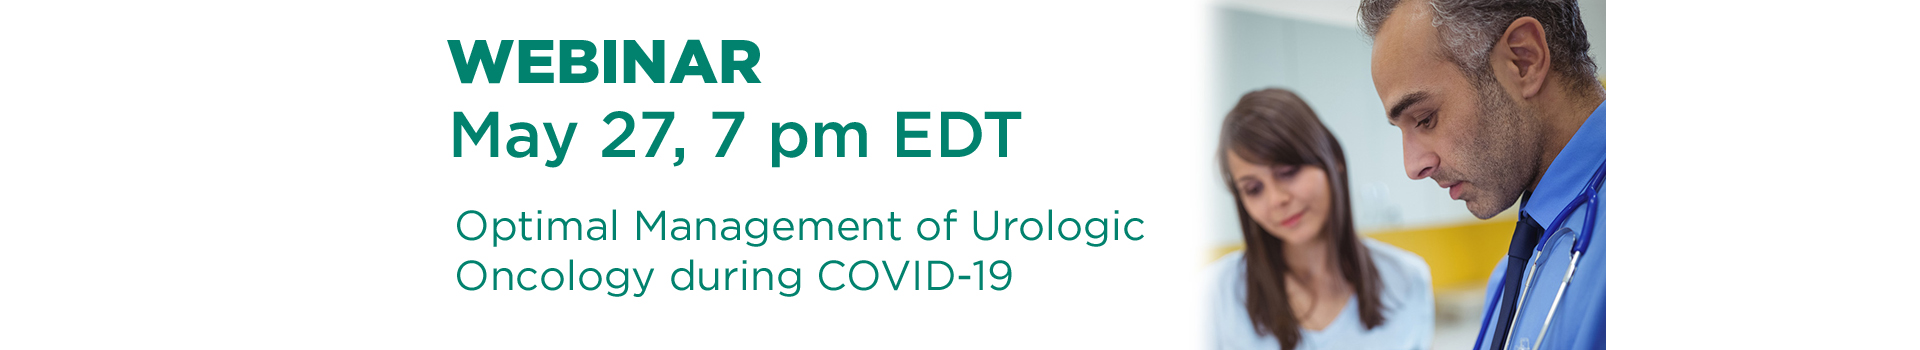 Webinar May 27 7 pm EDT - Optimal managment of Urologic Oncology during COVID-19